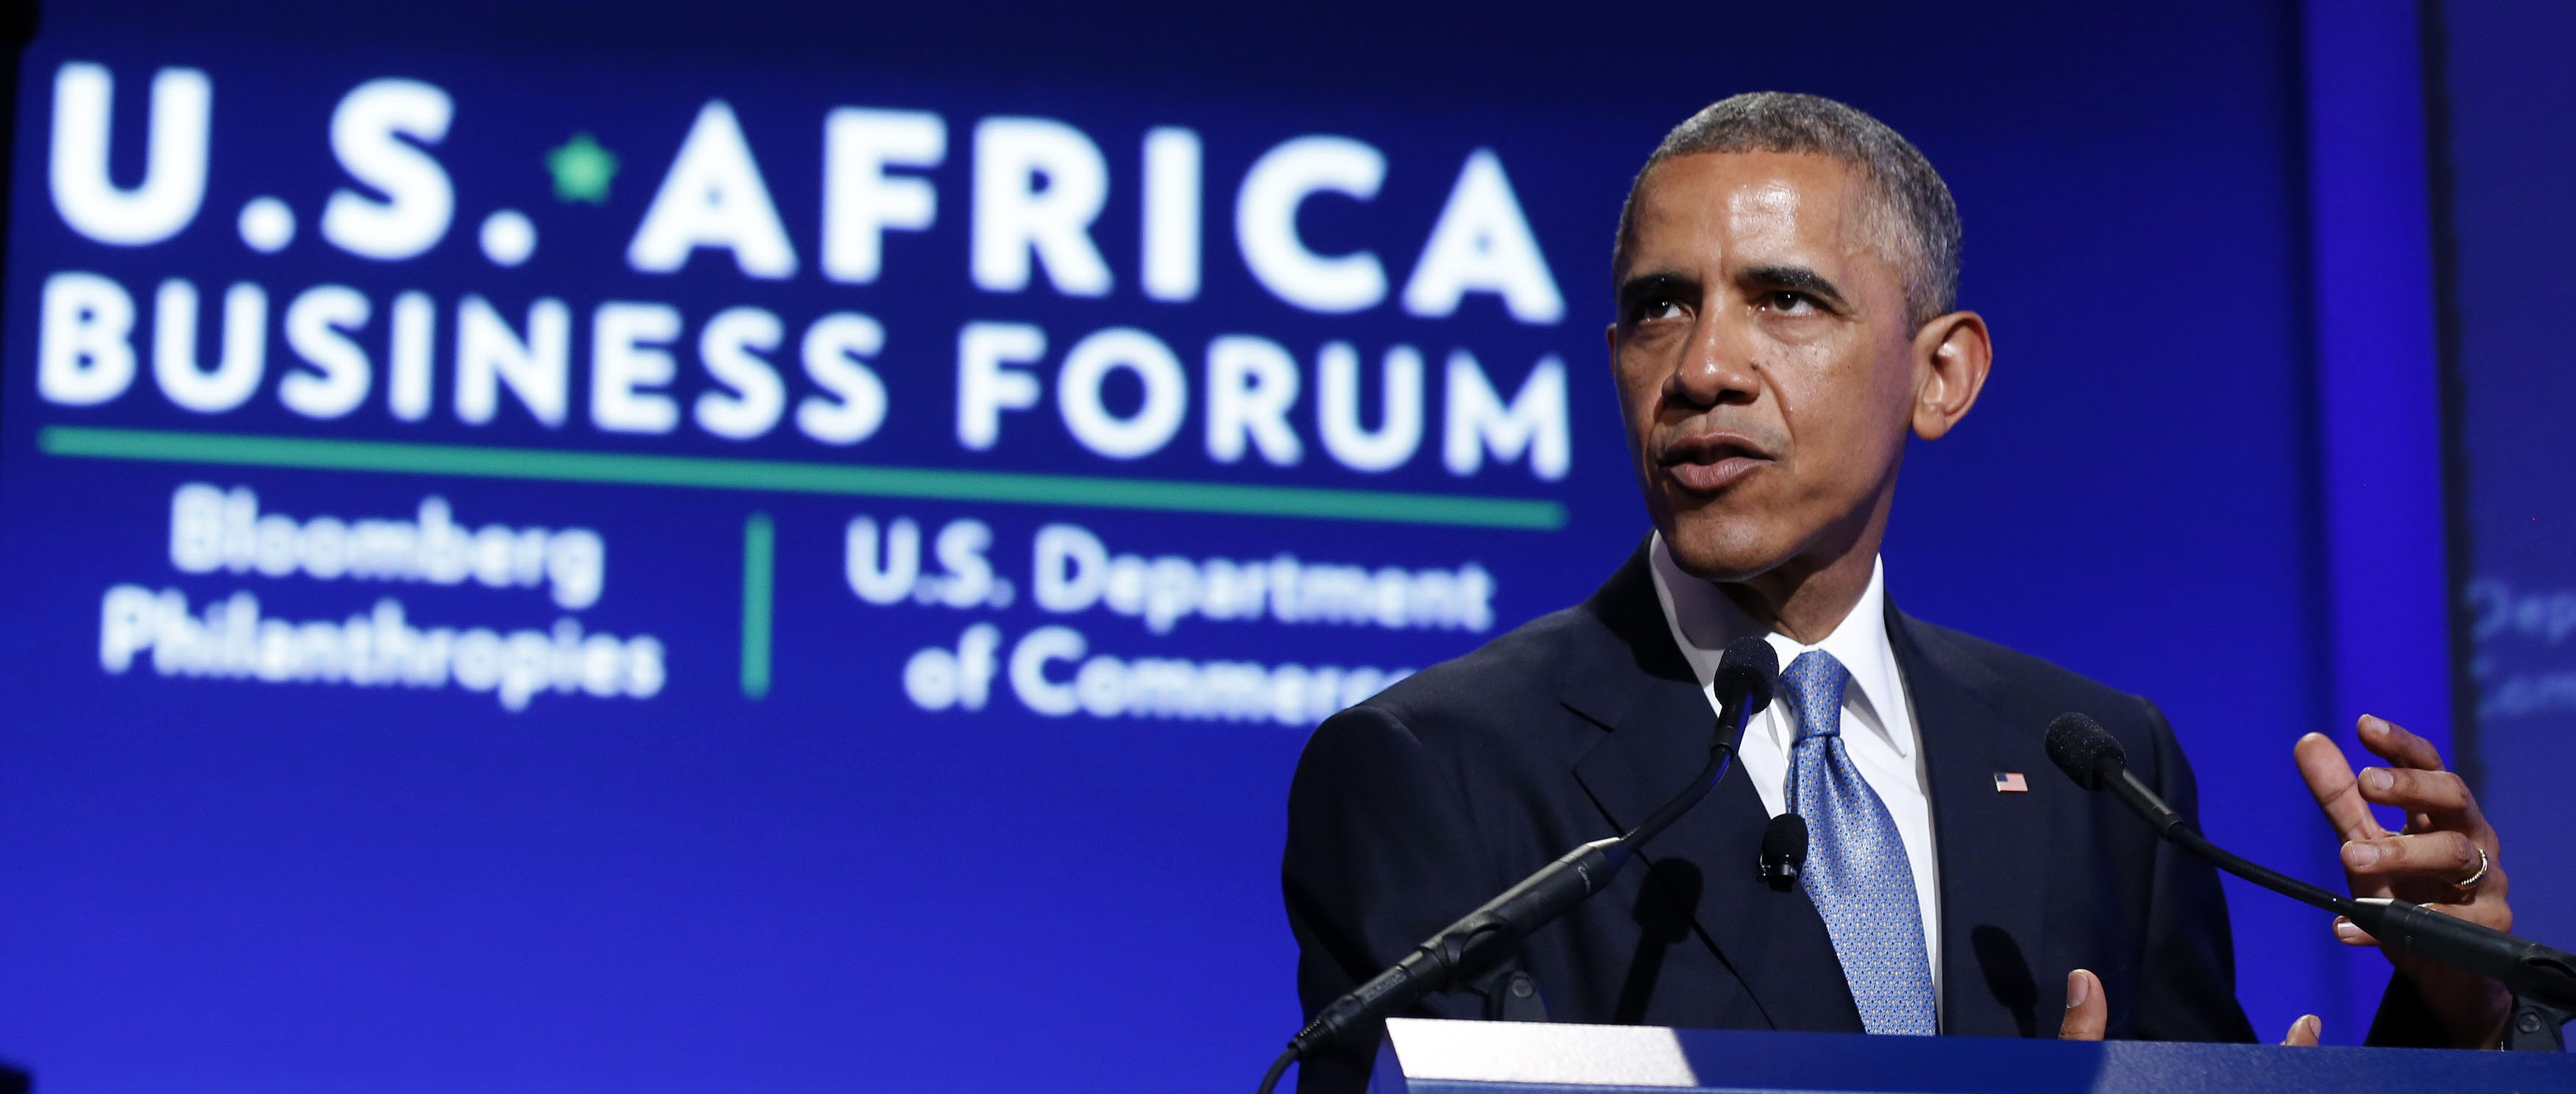 U.S. President Barack Obama talks at the U.S.-Africa Business Forum about strengthening trade and financial ties between the U.S. and Africa in Washington, August 5, 2014.     REUTERS/Larry Downing   (UNITED STATES - Tags: POLITICS BUSINESS) - RTR41CWV